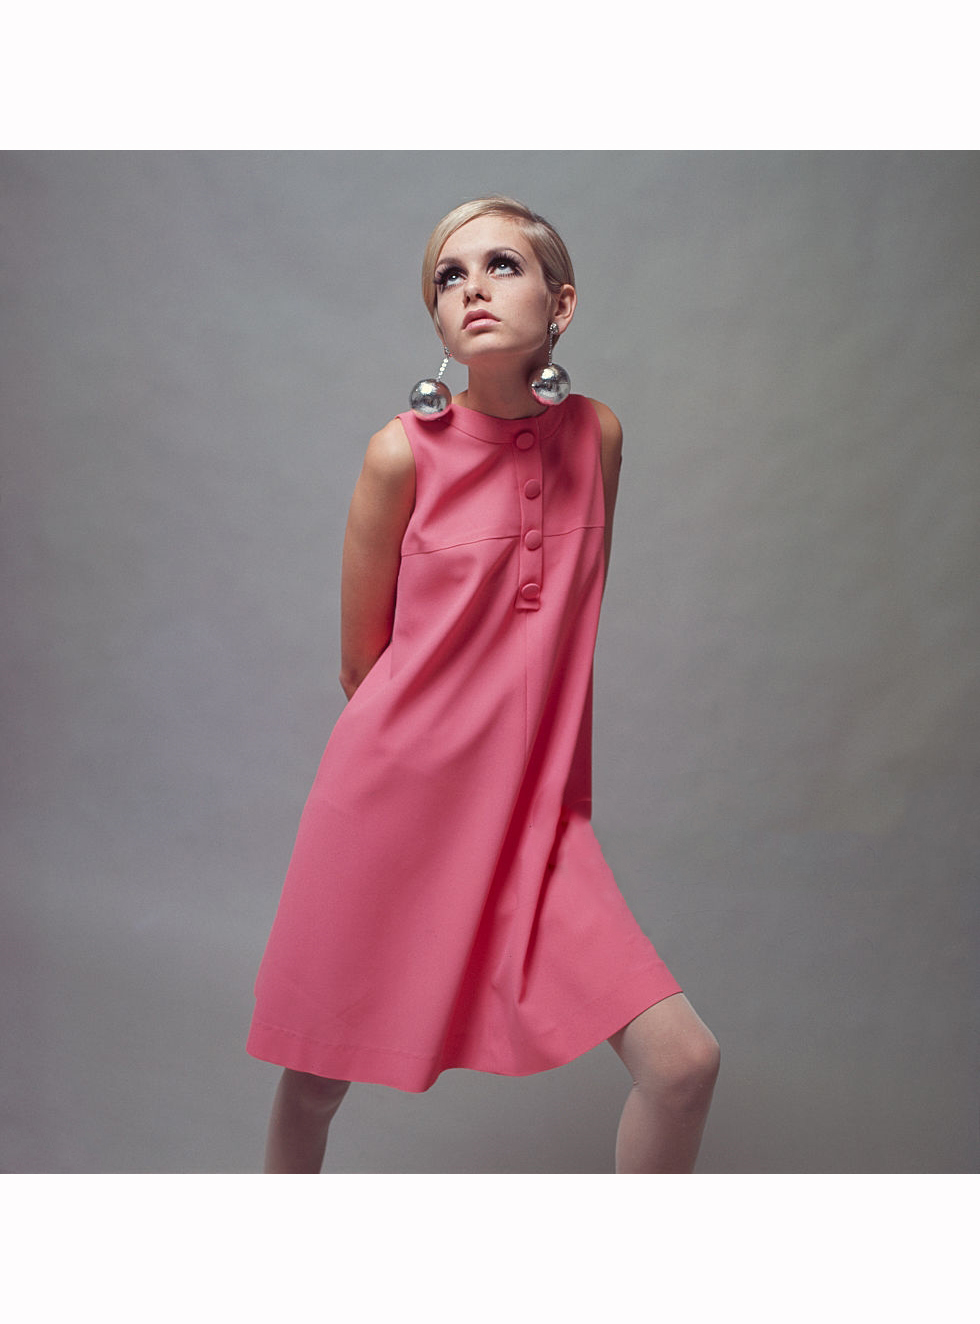 Mary Quant Pleasurephoto Jolie Clothing Patsy Mini Dress Twiggy Lesley Hornby Wearing A Pale Pink And Large Bauble